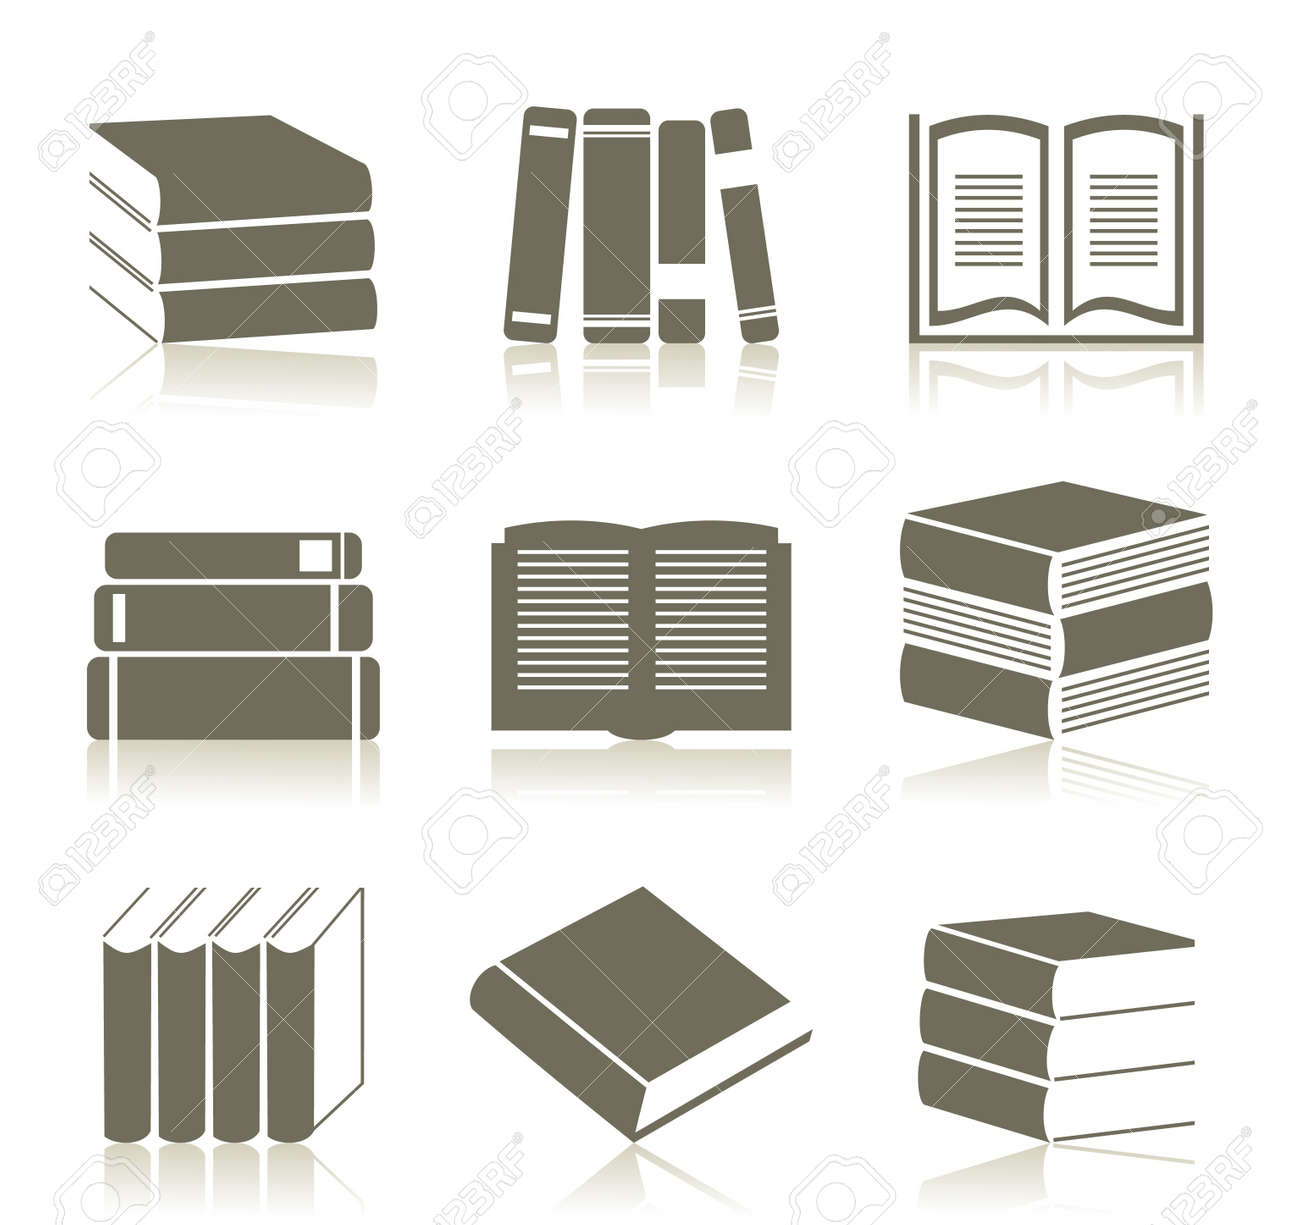 Set of icons of books   illustration Stock Vector - 16449838